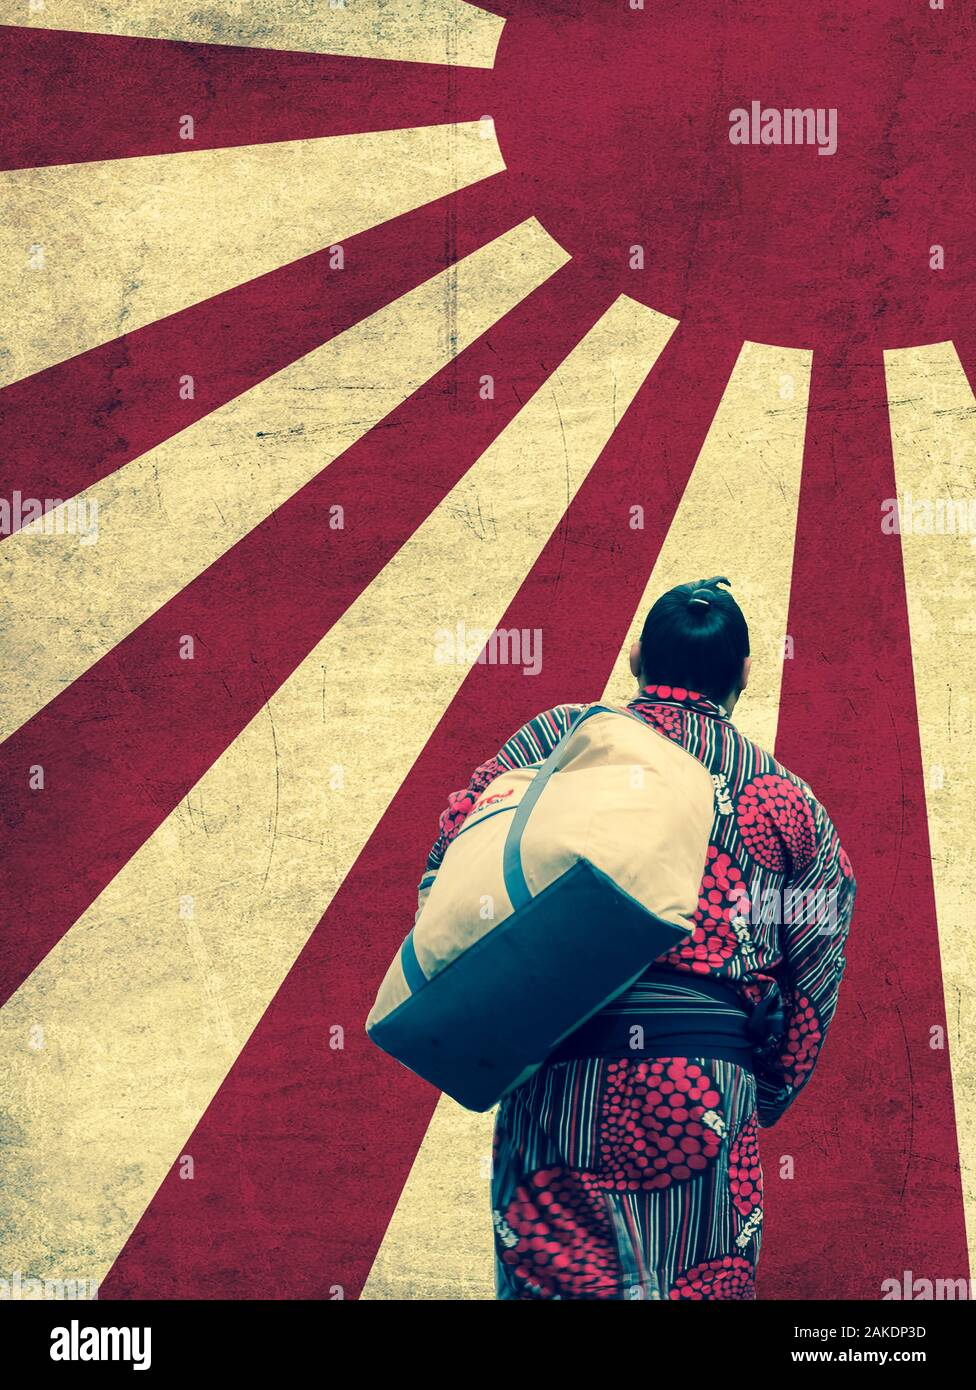 Tokyo, Japan. September 9, 2018. : Sumo wrestlers arrives at the Ryogoku Kokugikan Sumo arena in central Tokyo for competition days Stock Photo